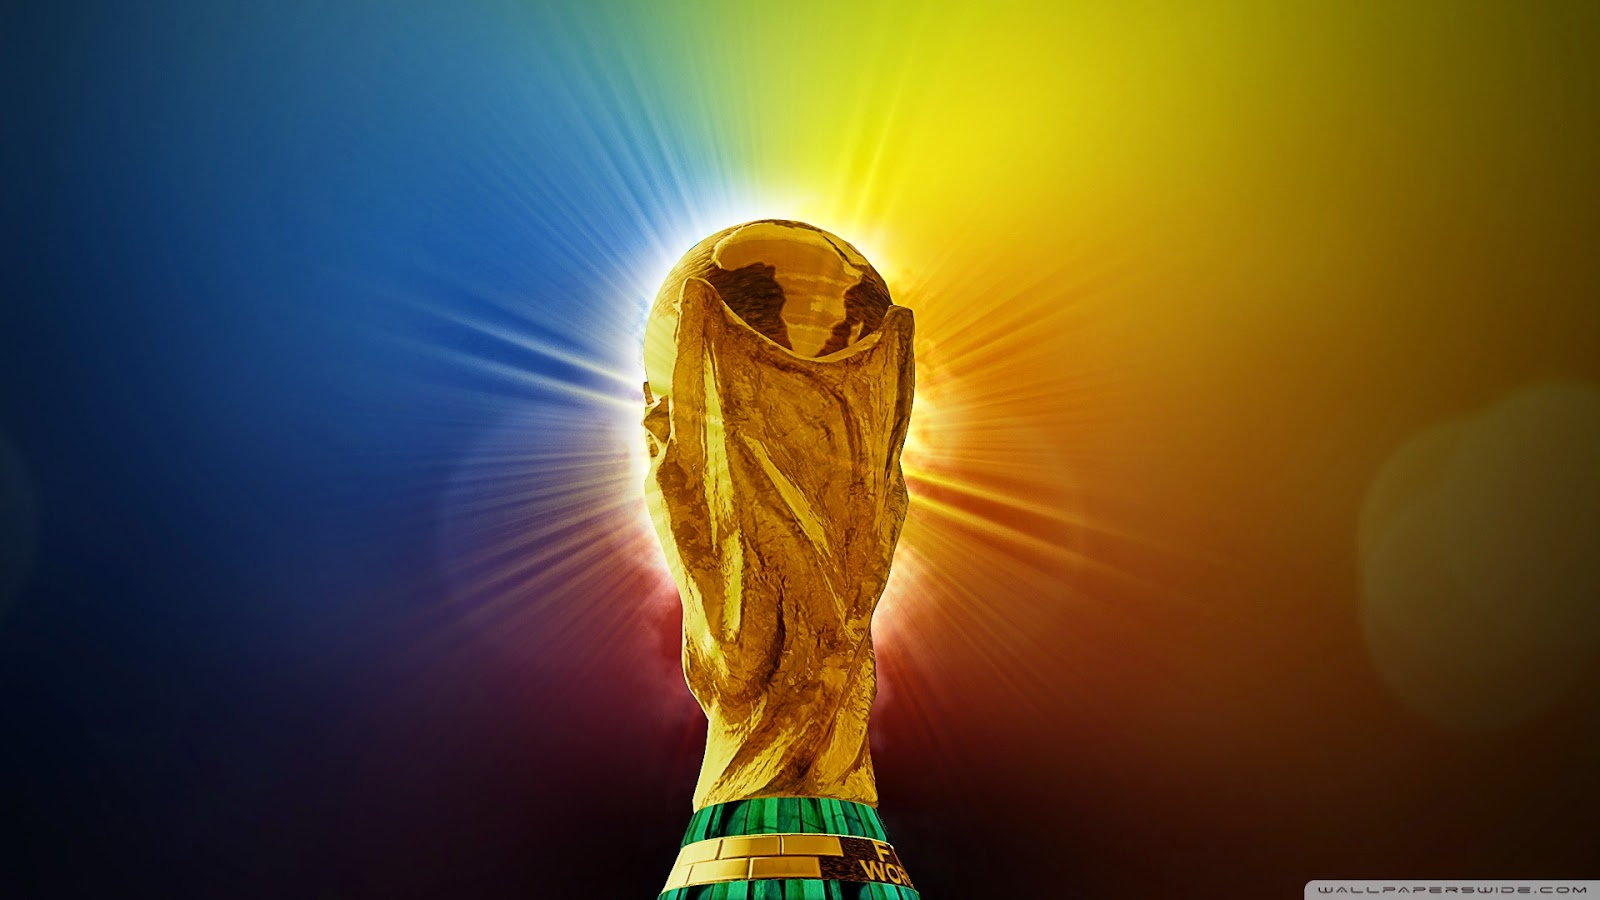 fifa_world_cup_2014-wallpaper (2)